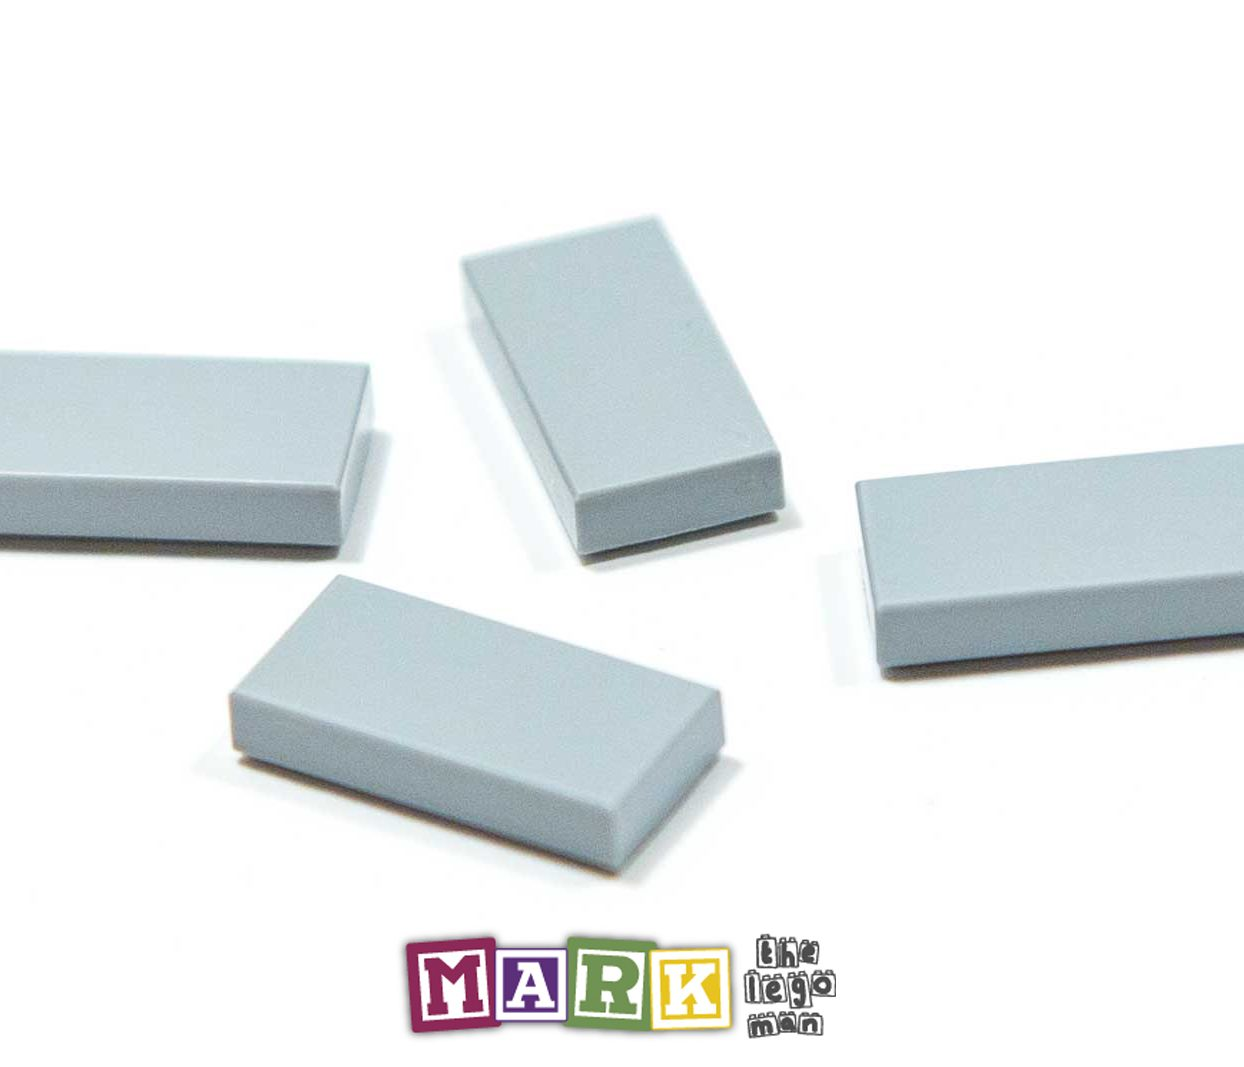 Pack of 4 New Lego 3069 1x2 Flat Tile 4211414